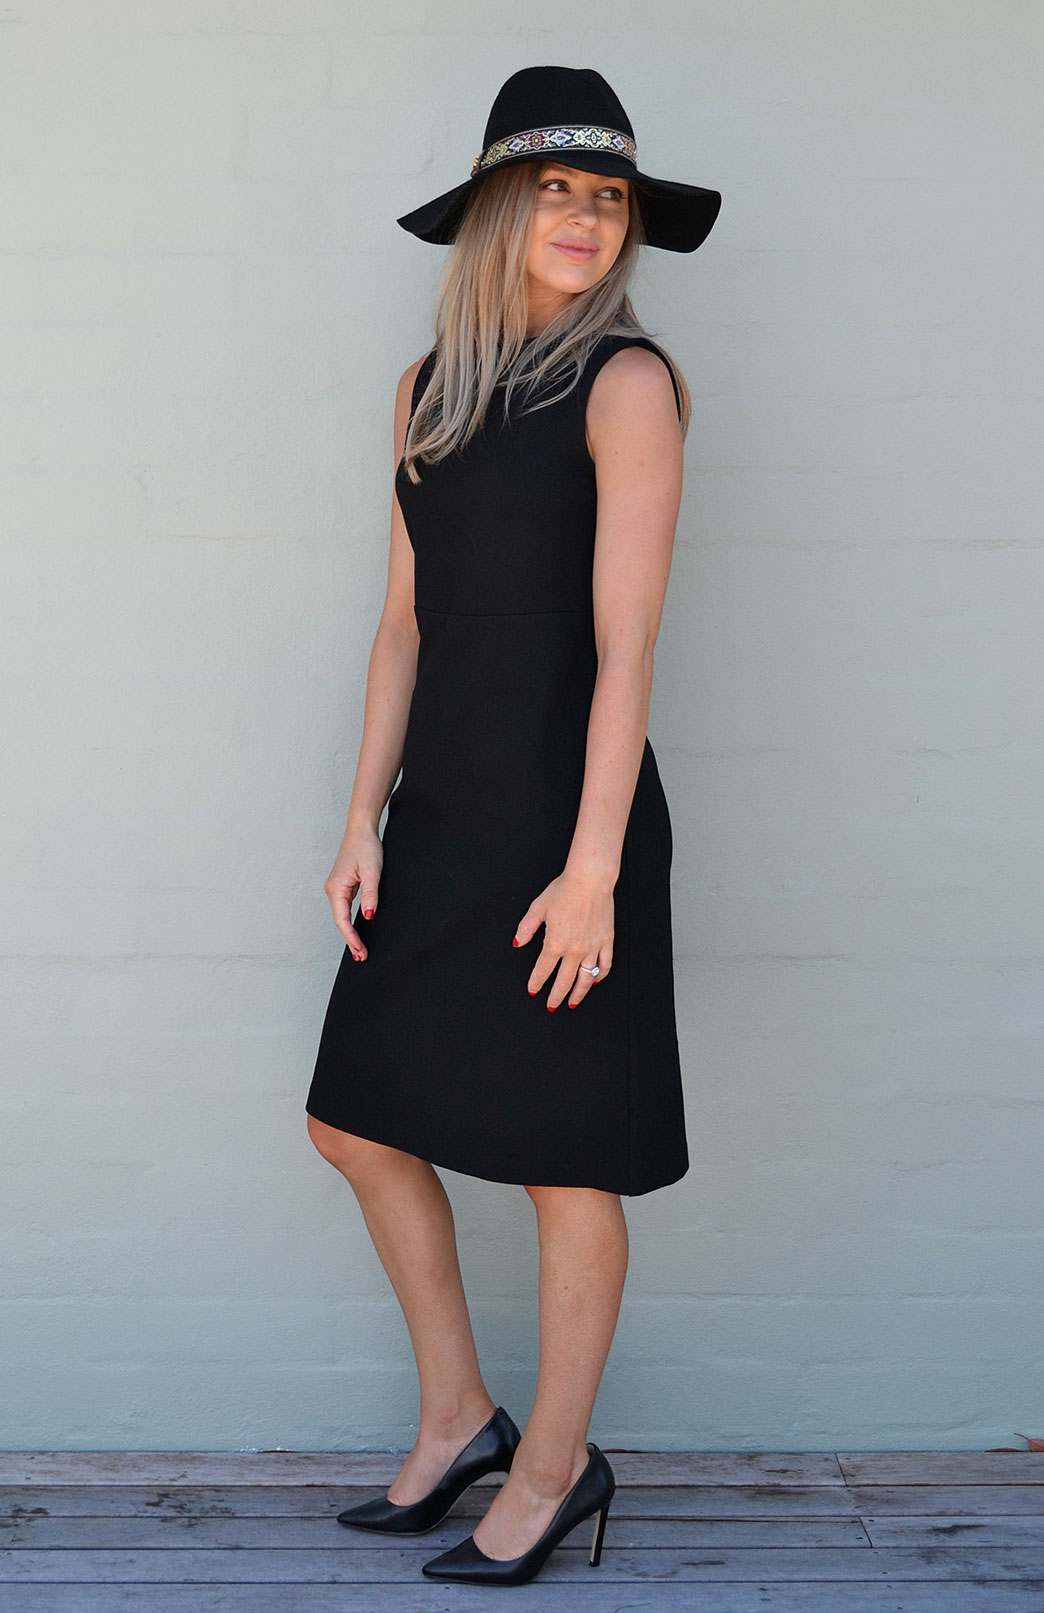 Asha Straight Dress - Women's Black Straight Wool Dress - Smitten Merino Tasmania Australia